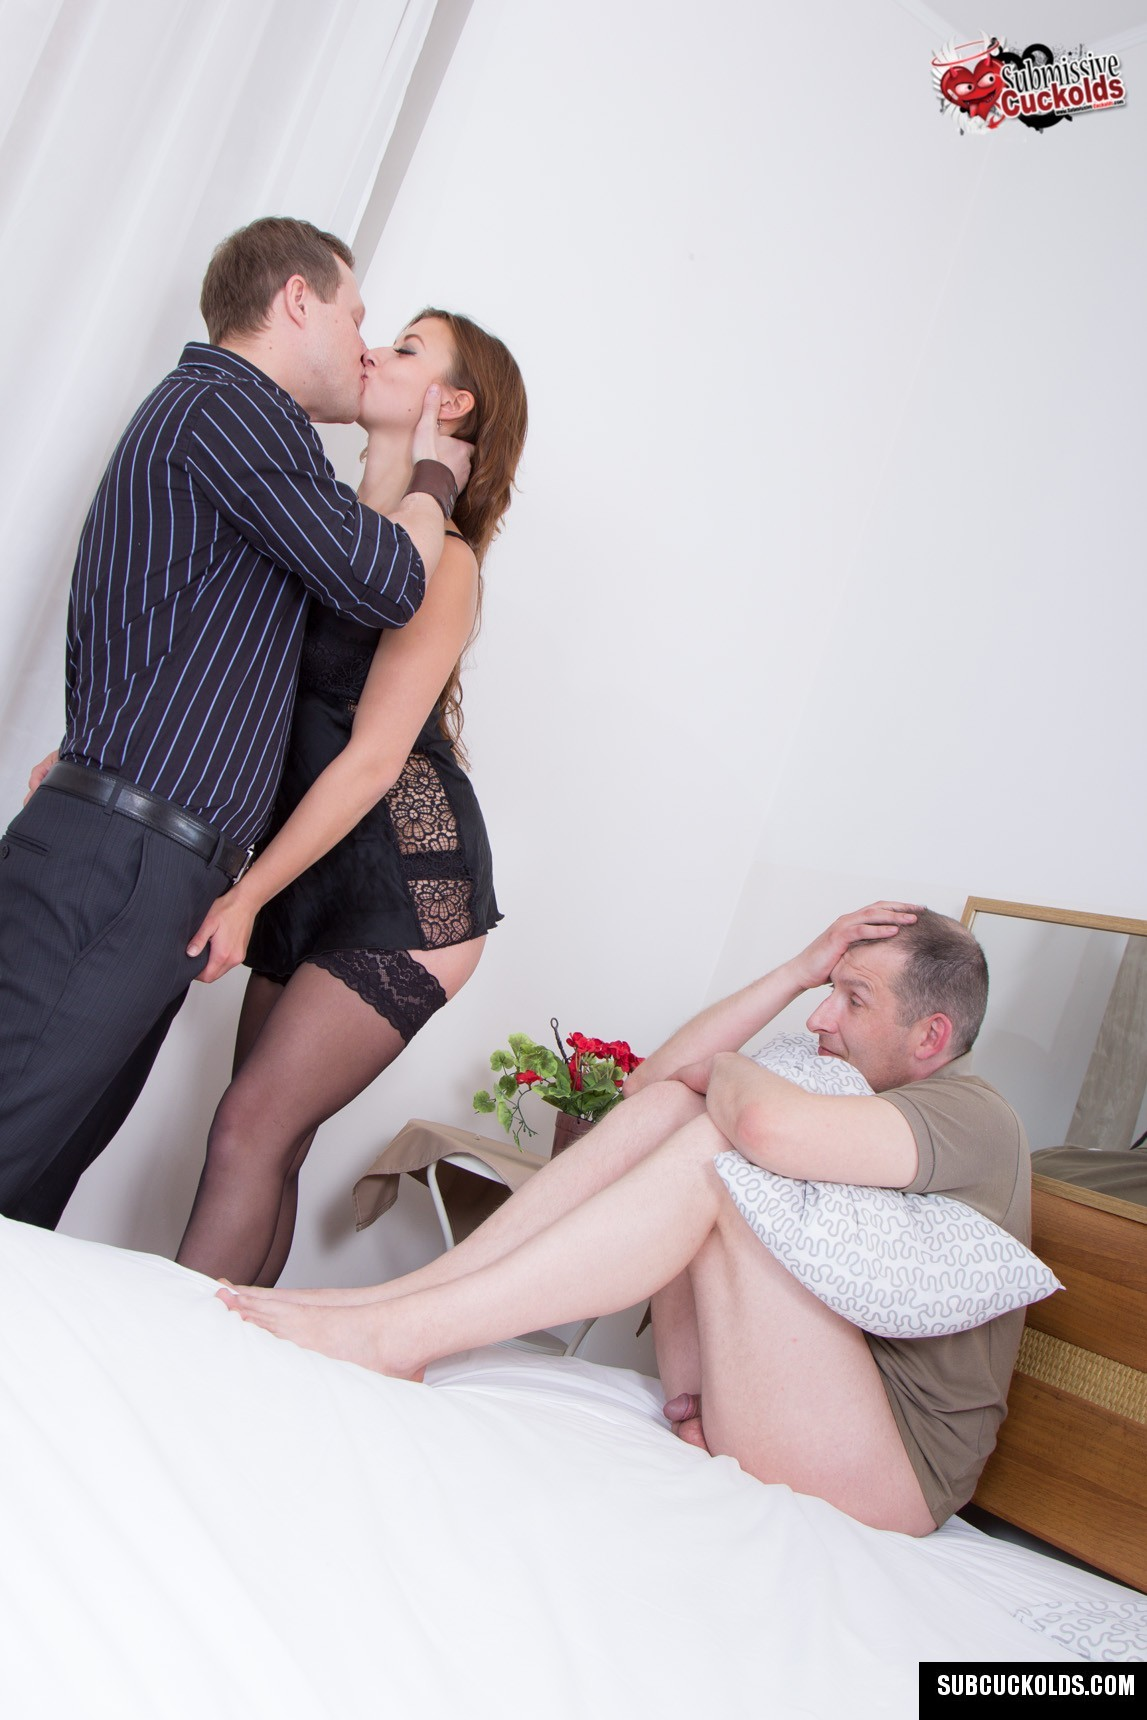 A young cuckold relationship part 1 - 1 part 5